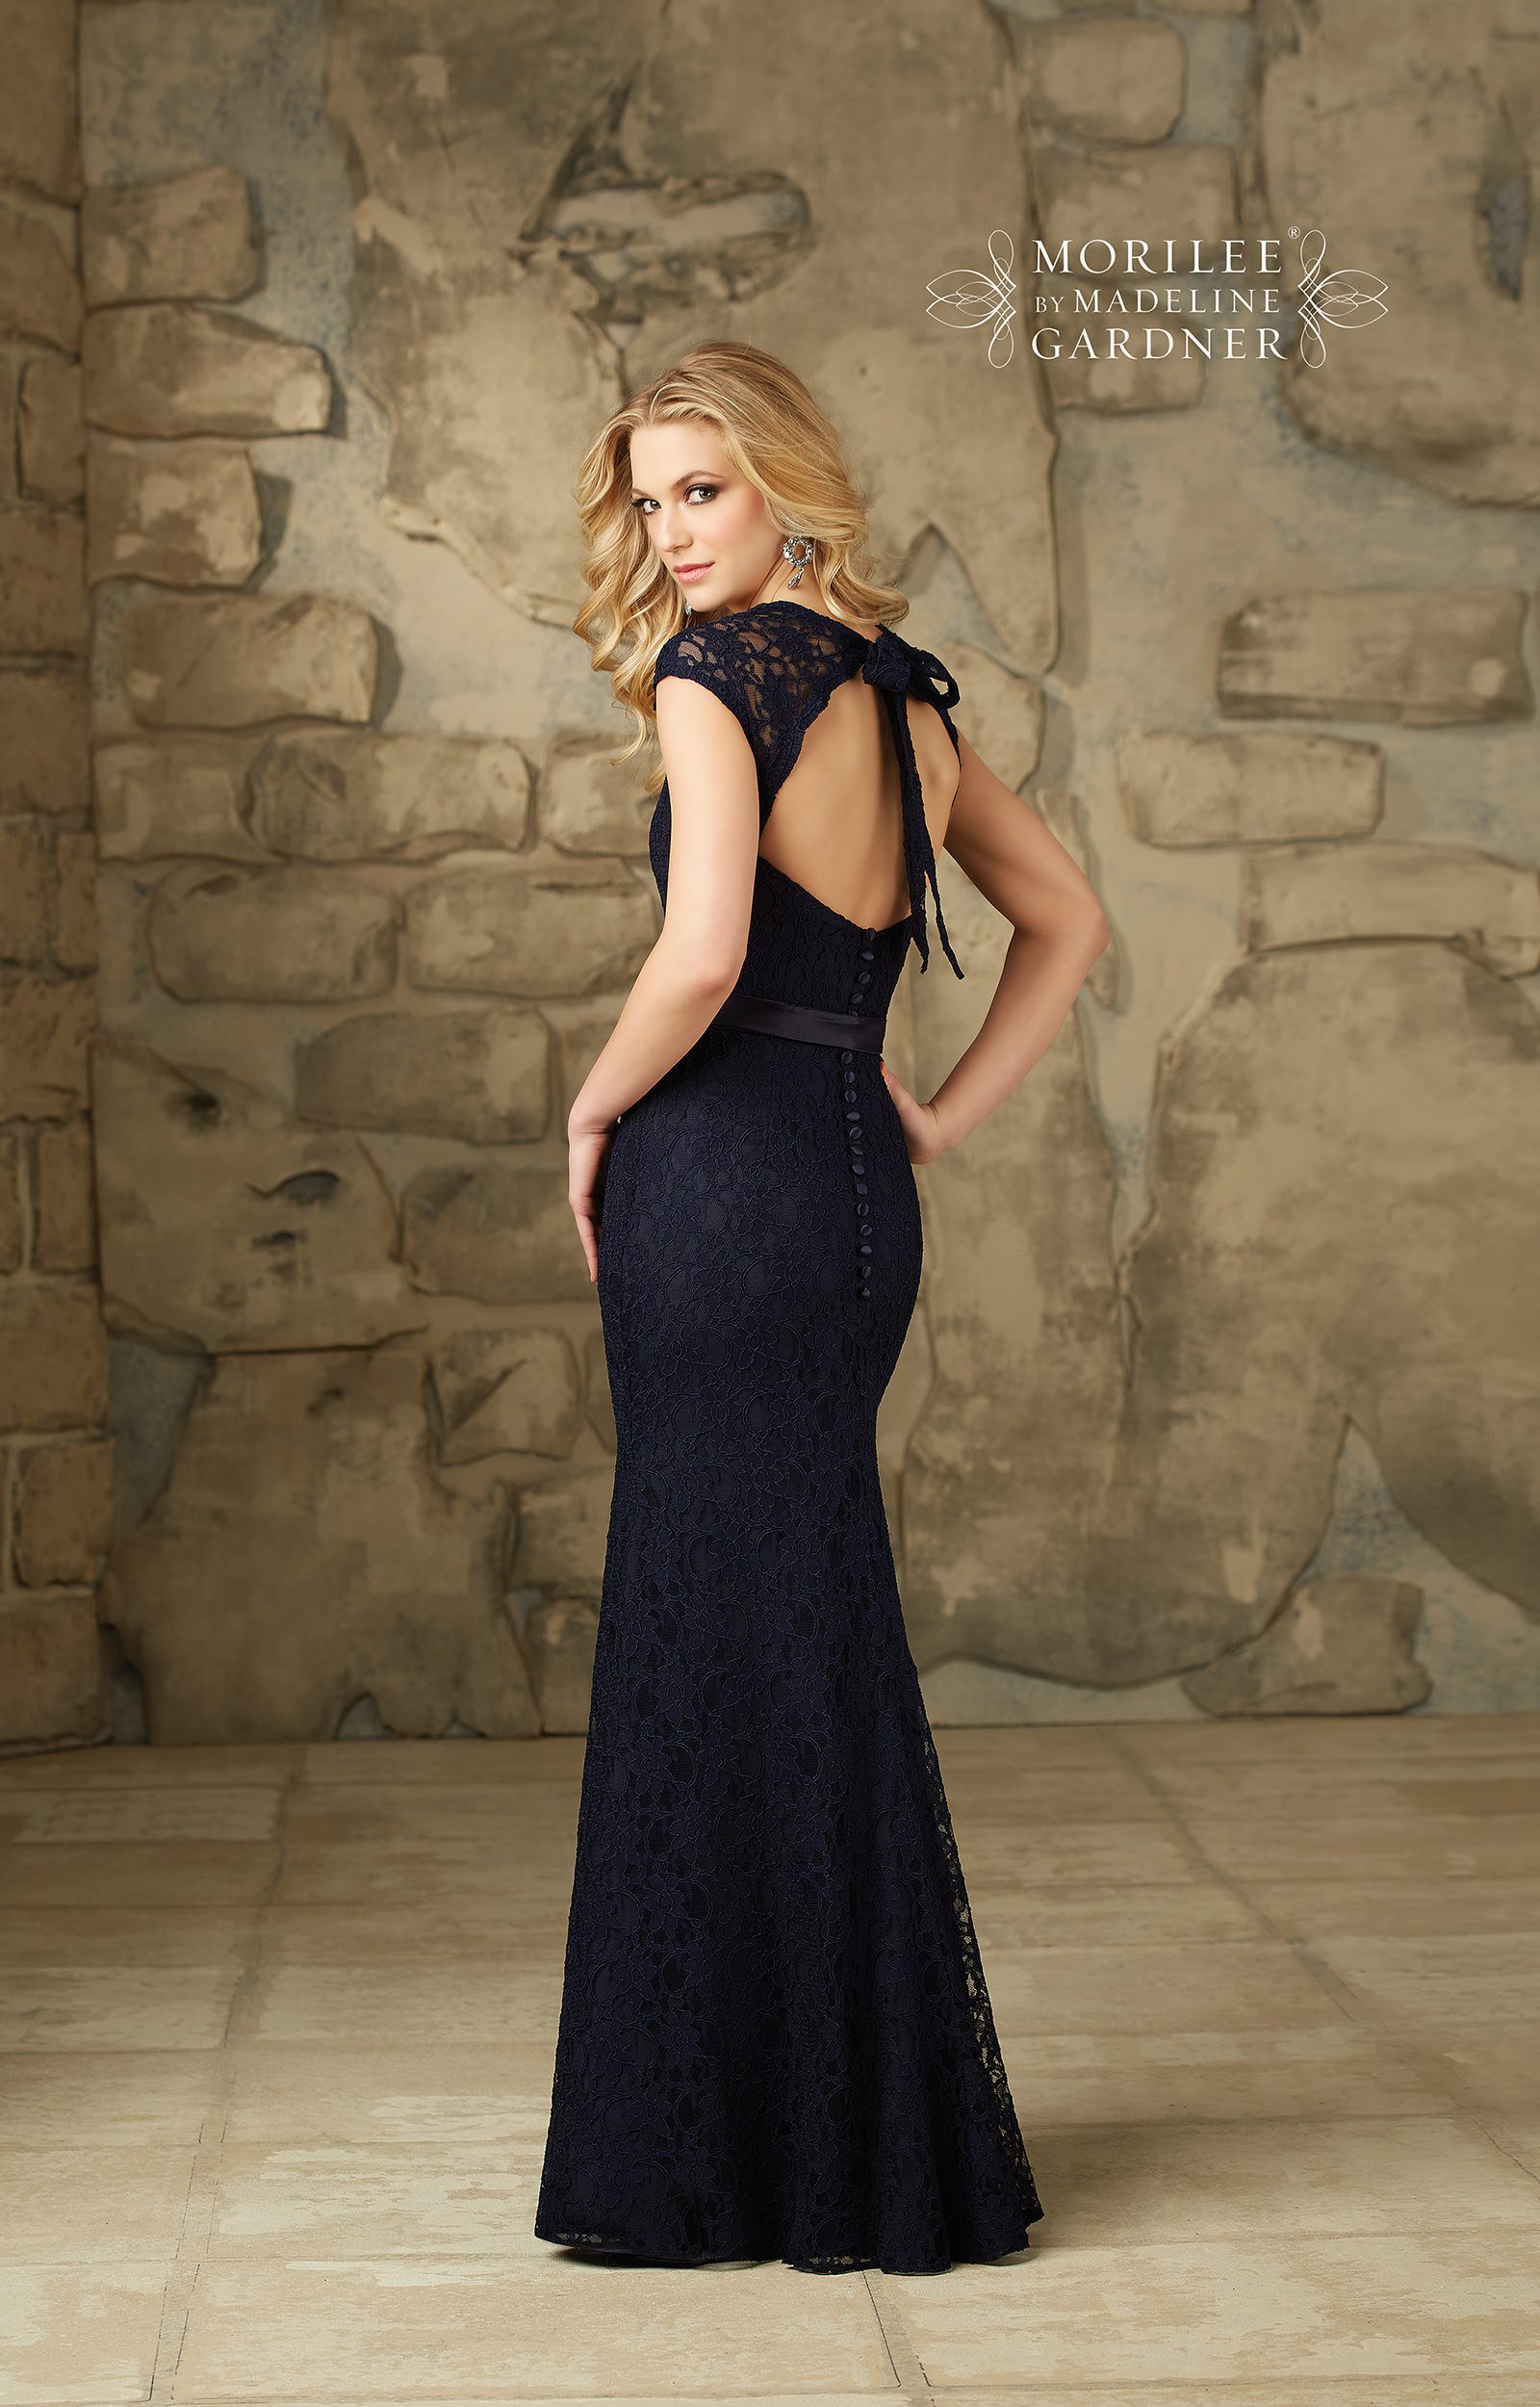 Mori Lee Bridesmaid 108 Cap Sleeve Mermaid with Lace